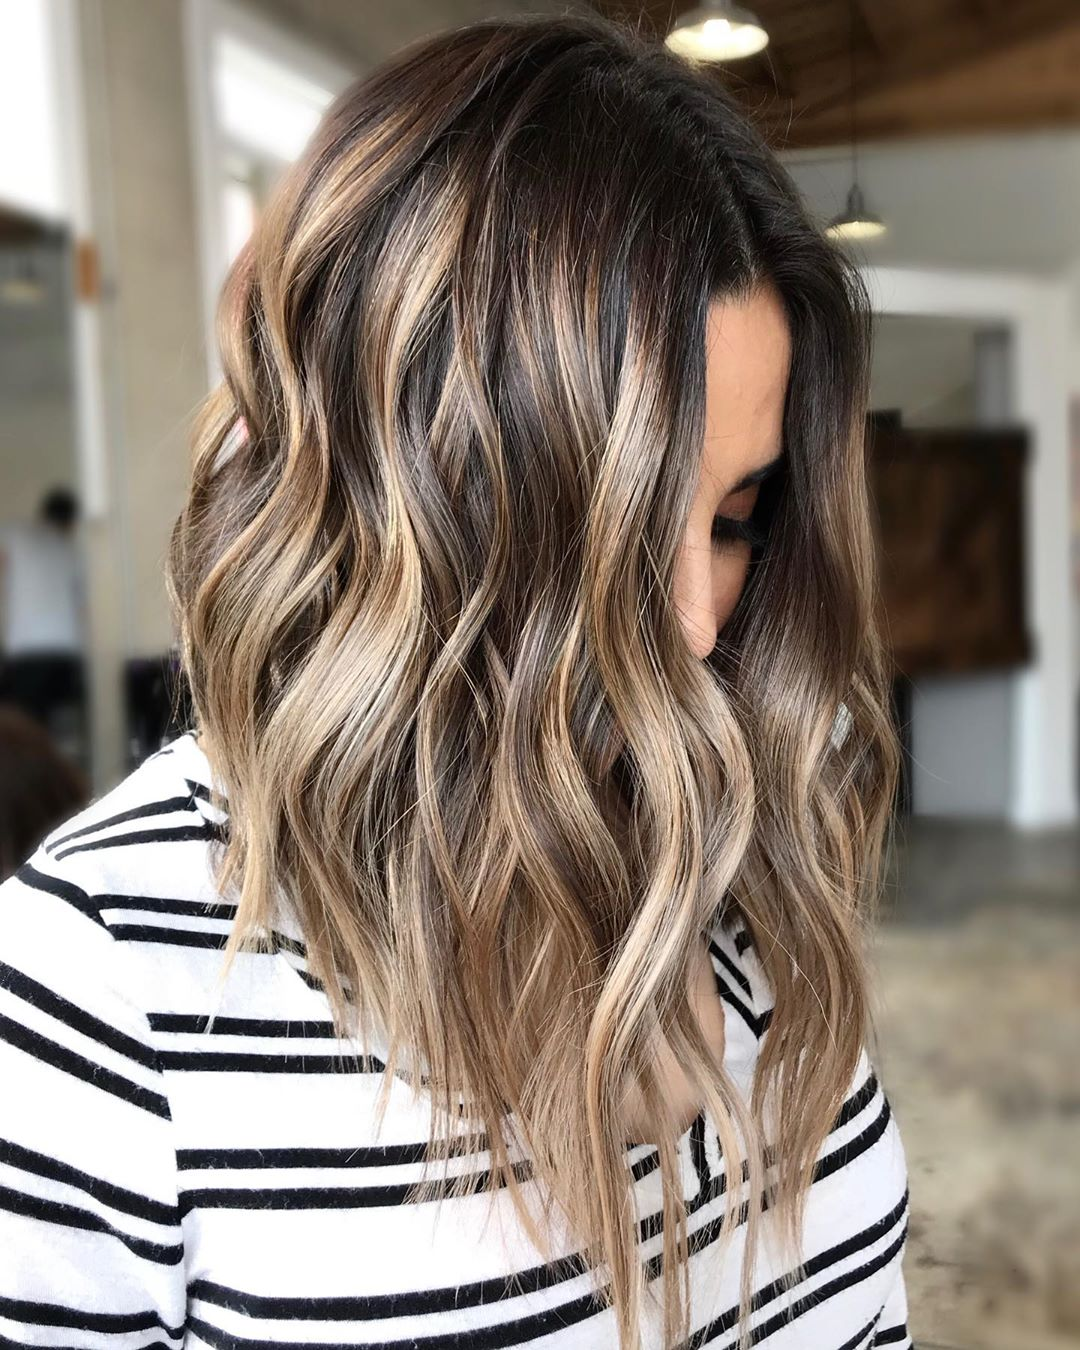 Shoulder Length Haircut Designs for Women - 2021 Meidum Haircuts and Hairstyle Ideas